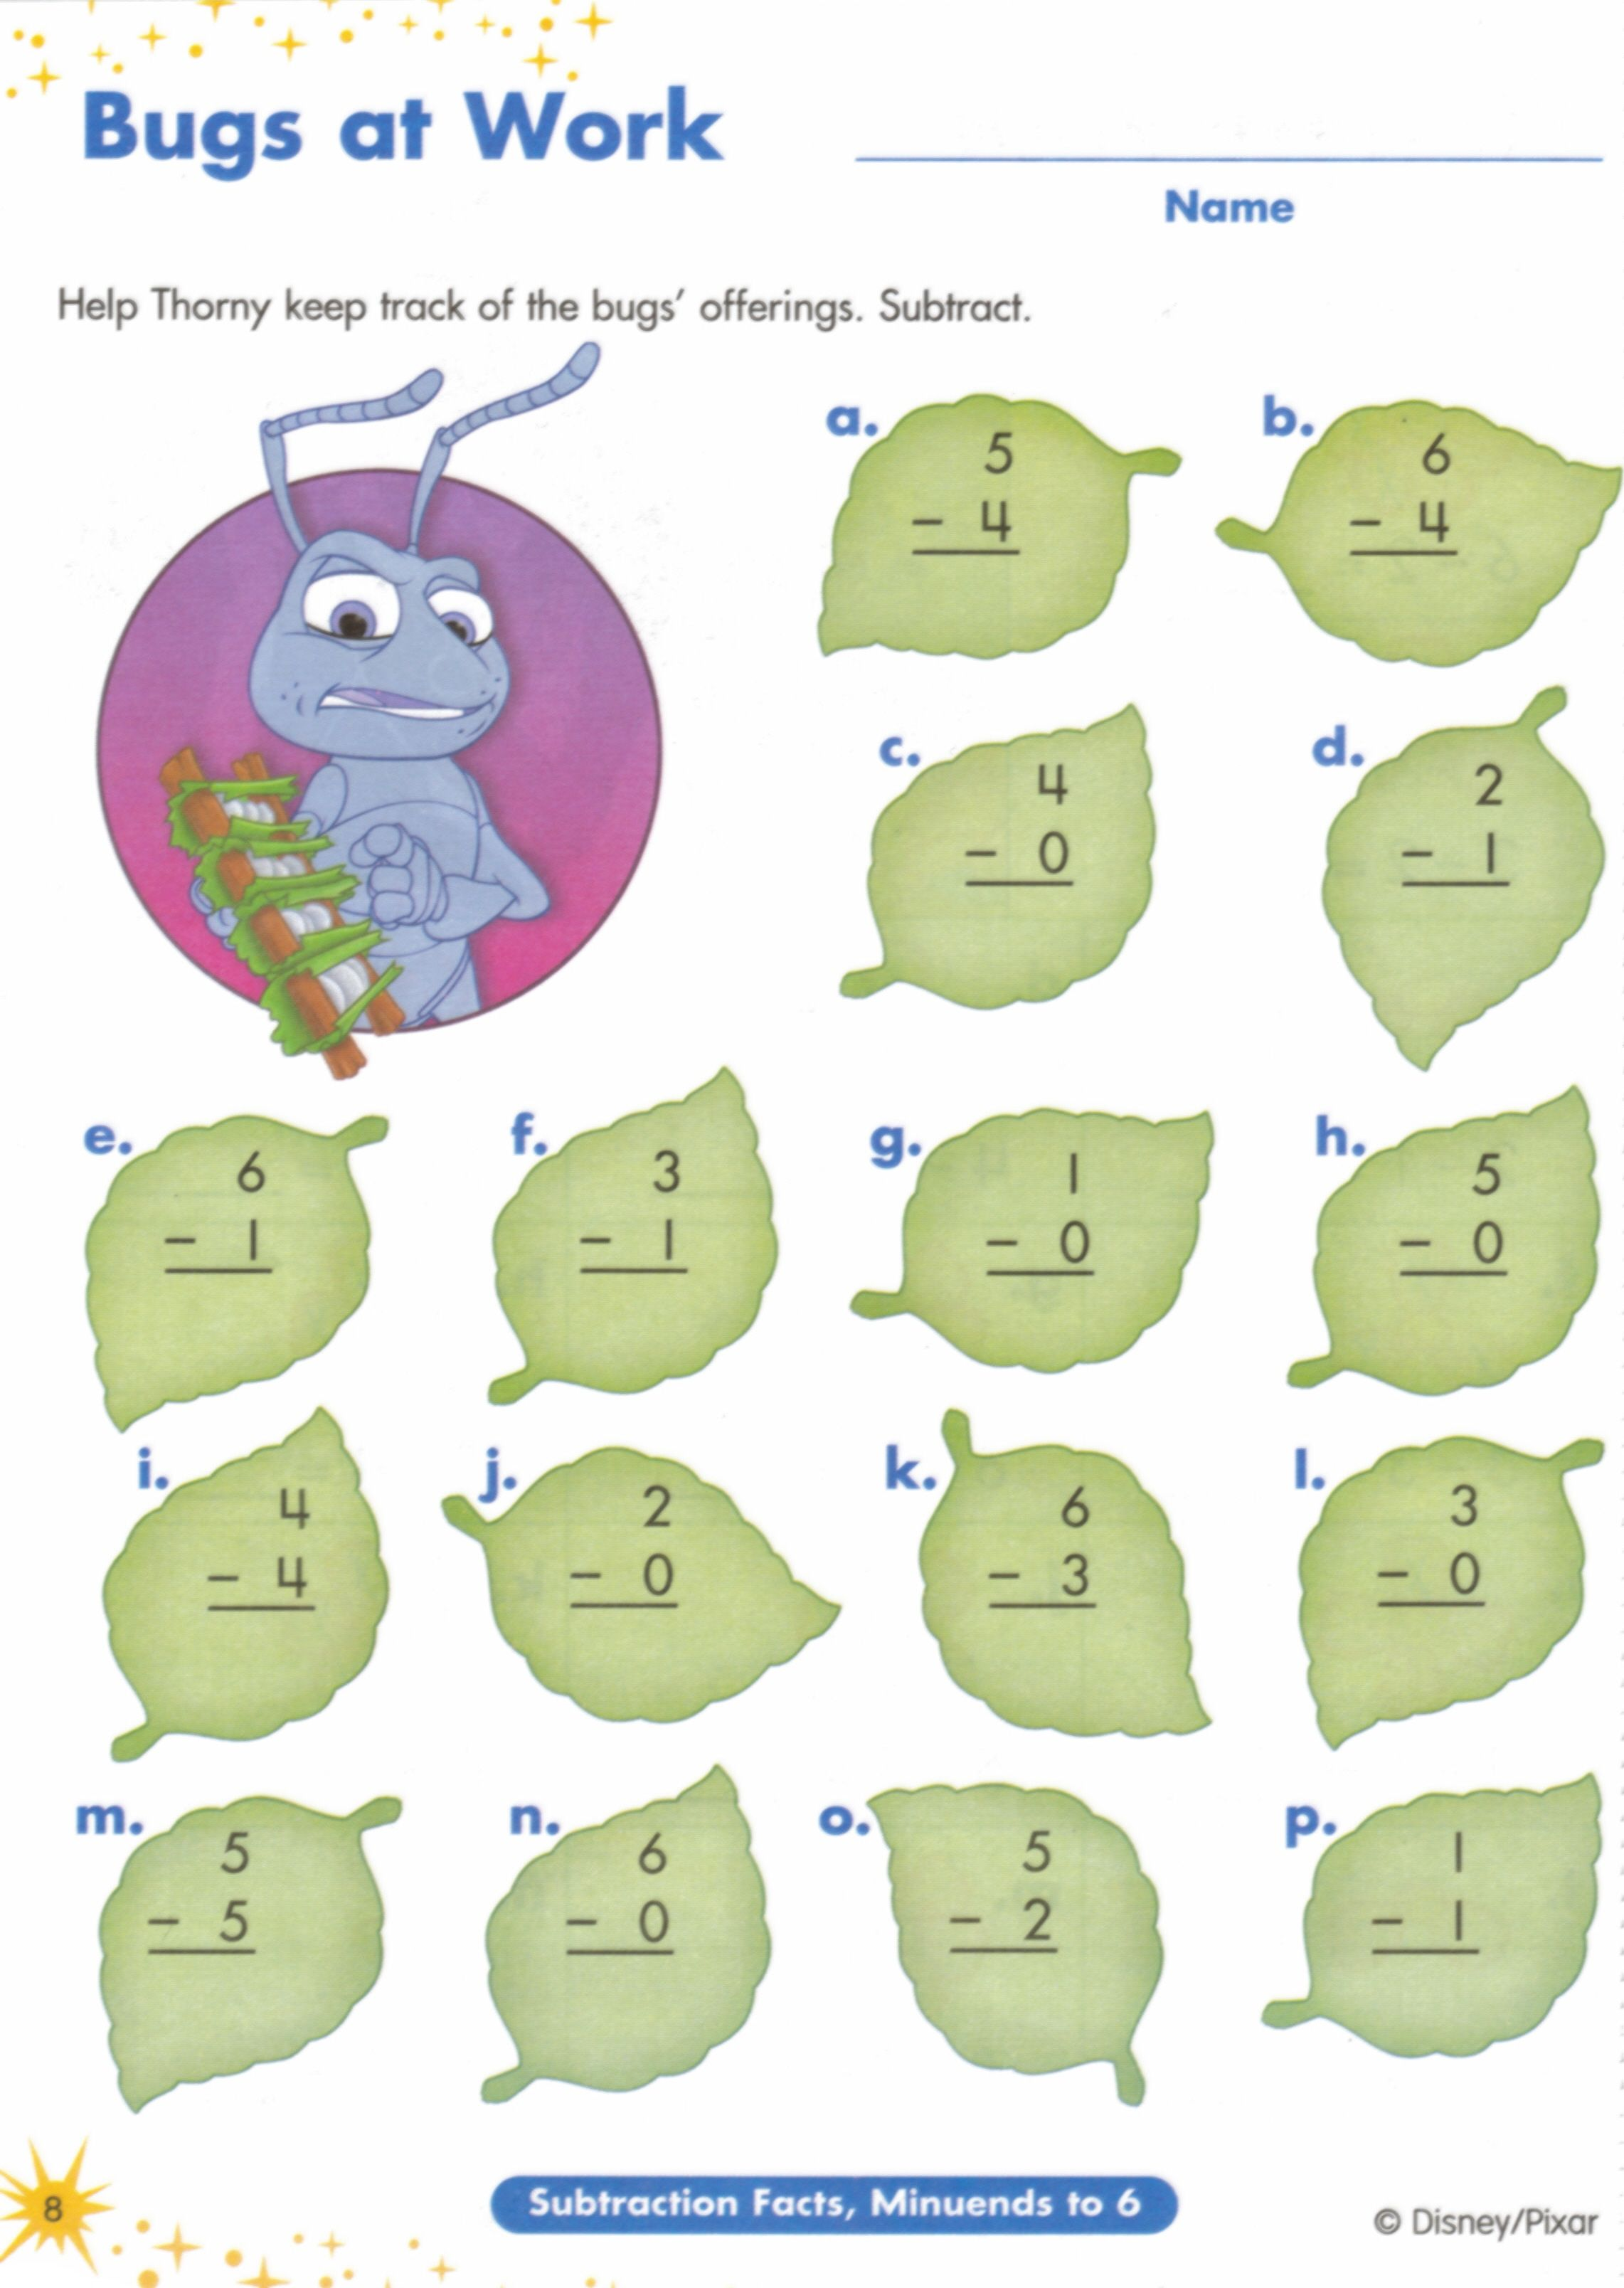 Proatmealus  Stunning  Images About Worksheets On Pinterest  Fun Facts For Kids  With Lovable  Images About Worksheets On Pinterest  Fun Facts For Kids Earth Day Worksheets And Jungles With Alluring Matching Lower And Uppercase Letters Worksheet Also One Digit Multiplication Worksheet In Addition Tenses Of Verbs Worksheet And School Worksheet Template As Well As Interpreting Tables Worksheet Additionally Free Printable Preschool Letter Worksheets From Pinterestcom With Proatmealus  Lovable  Images About Worksheets On Pinterest  Fun Facts For Kids  With Alluring  Images About Worksheets On Pinterest  Fun Facts For Kids Earth Day Worksheets And Jungles And Stunning Matching Lower And Uppercase Letters Worksheet Also One Digit Multiplication Worksheet In Addition Tenses Of Verbs Worksheet From Pinterestcom